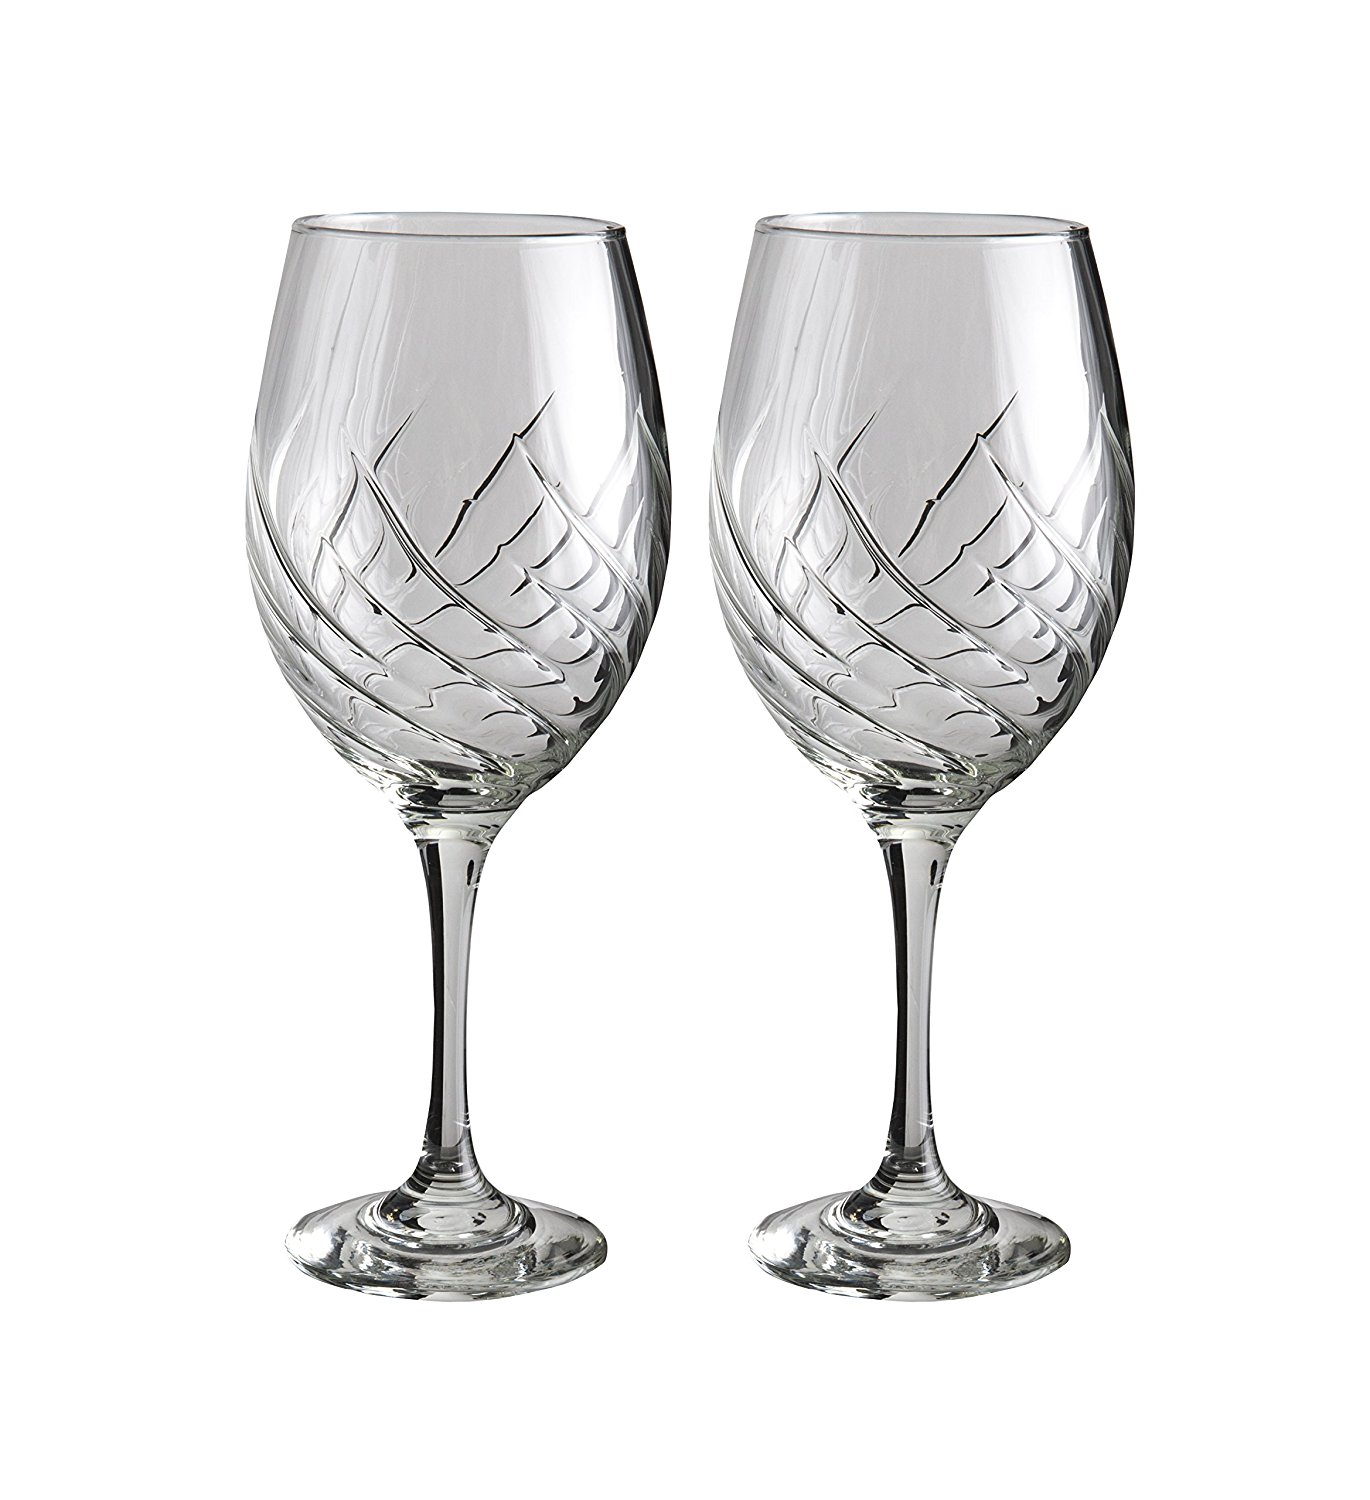 Borgonovo safe cup aerating wine glass3